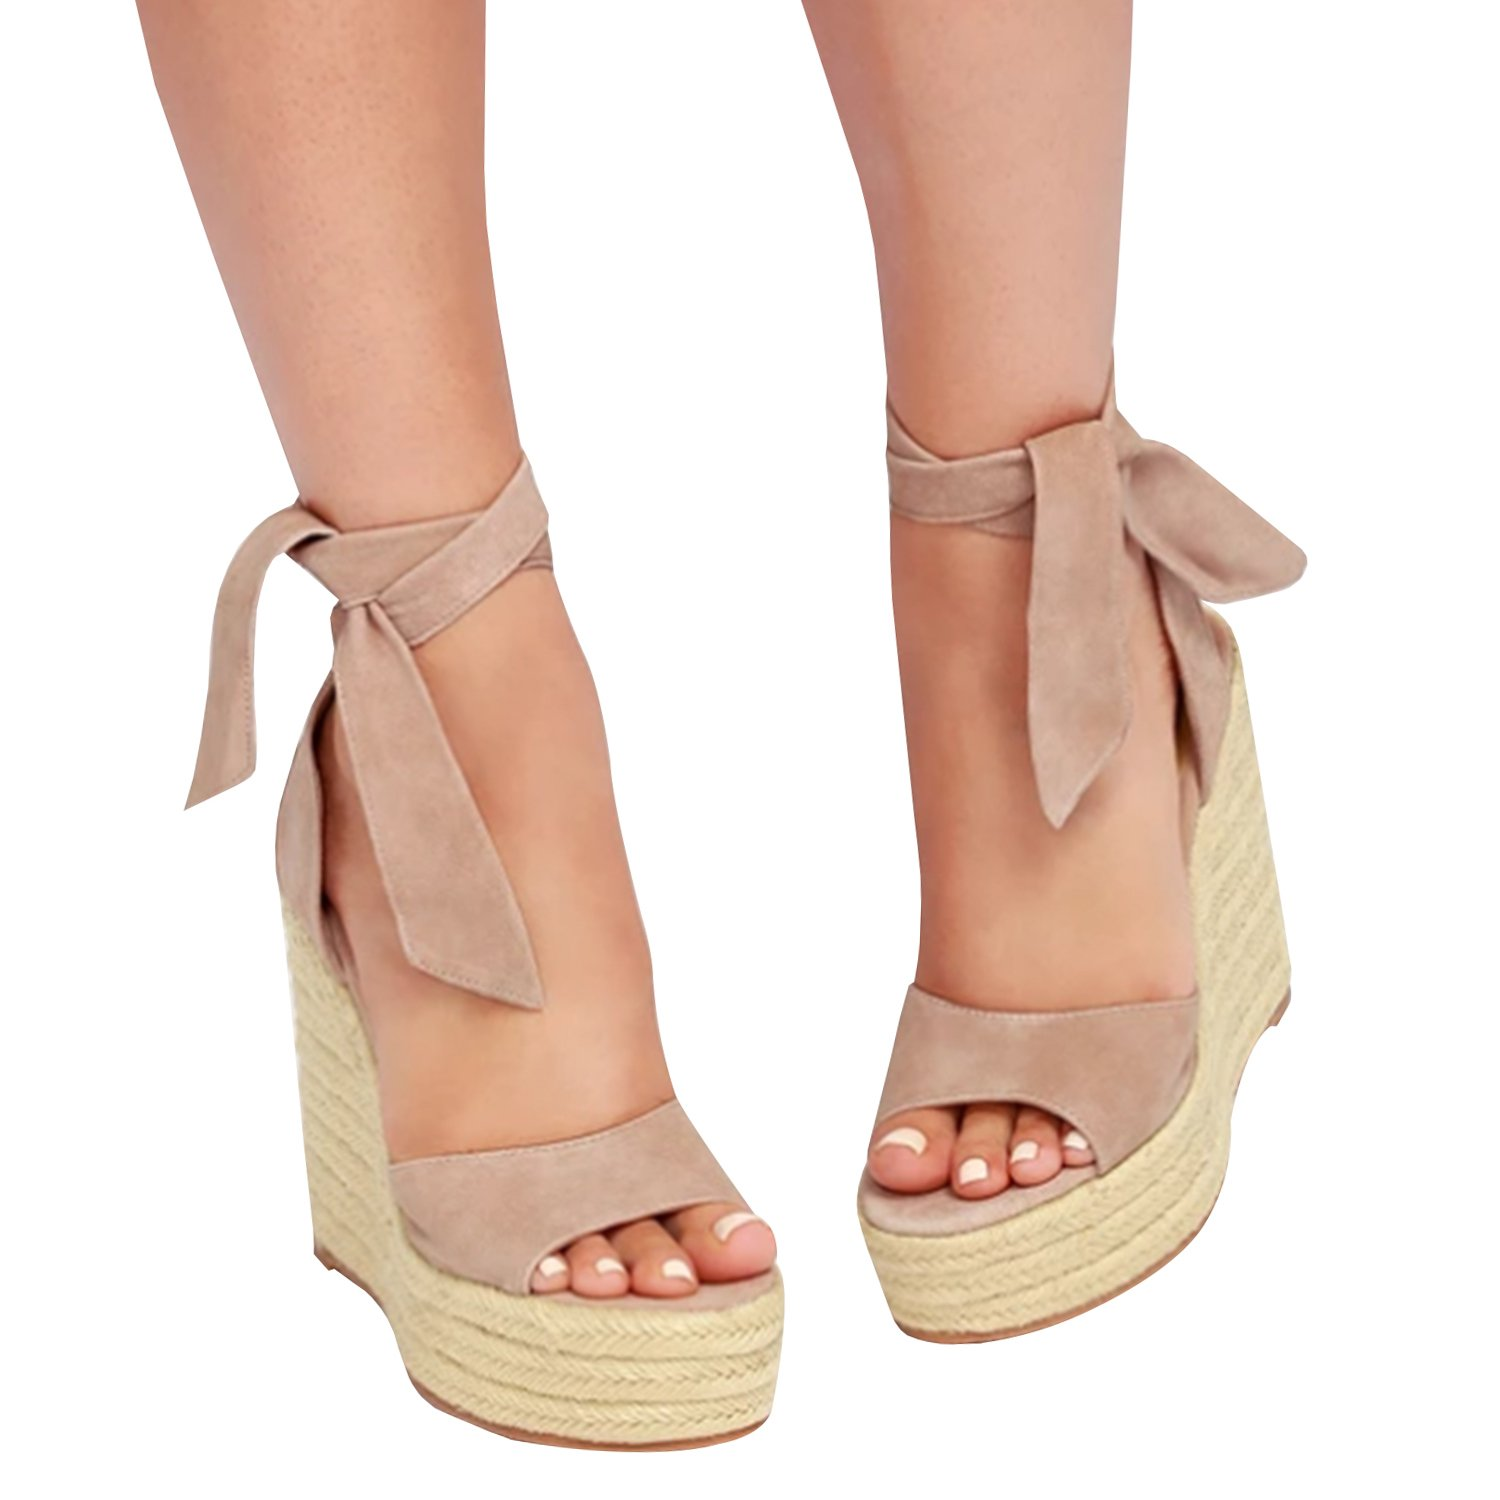 d45c51f0f72 Fashare womens tie lace up peep toe espadrille platform wedges sandals  slingback ankle strap shoes clothing